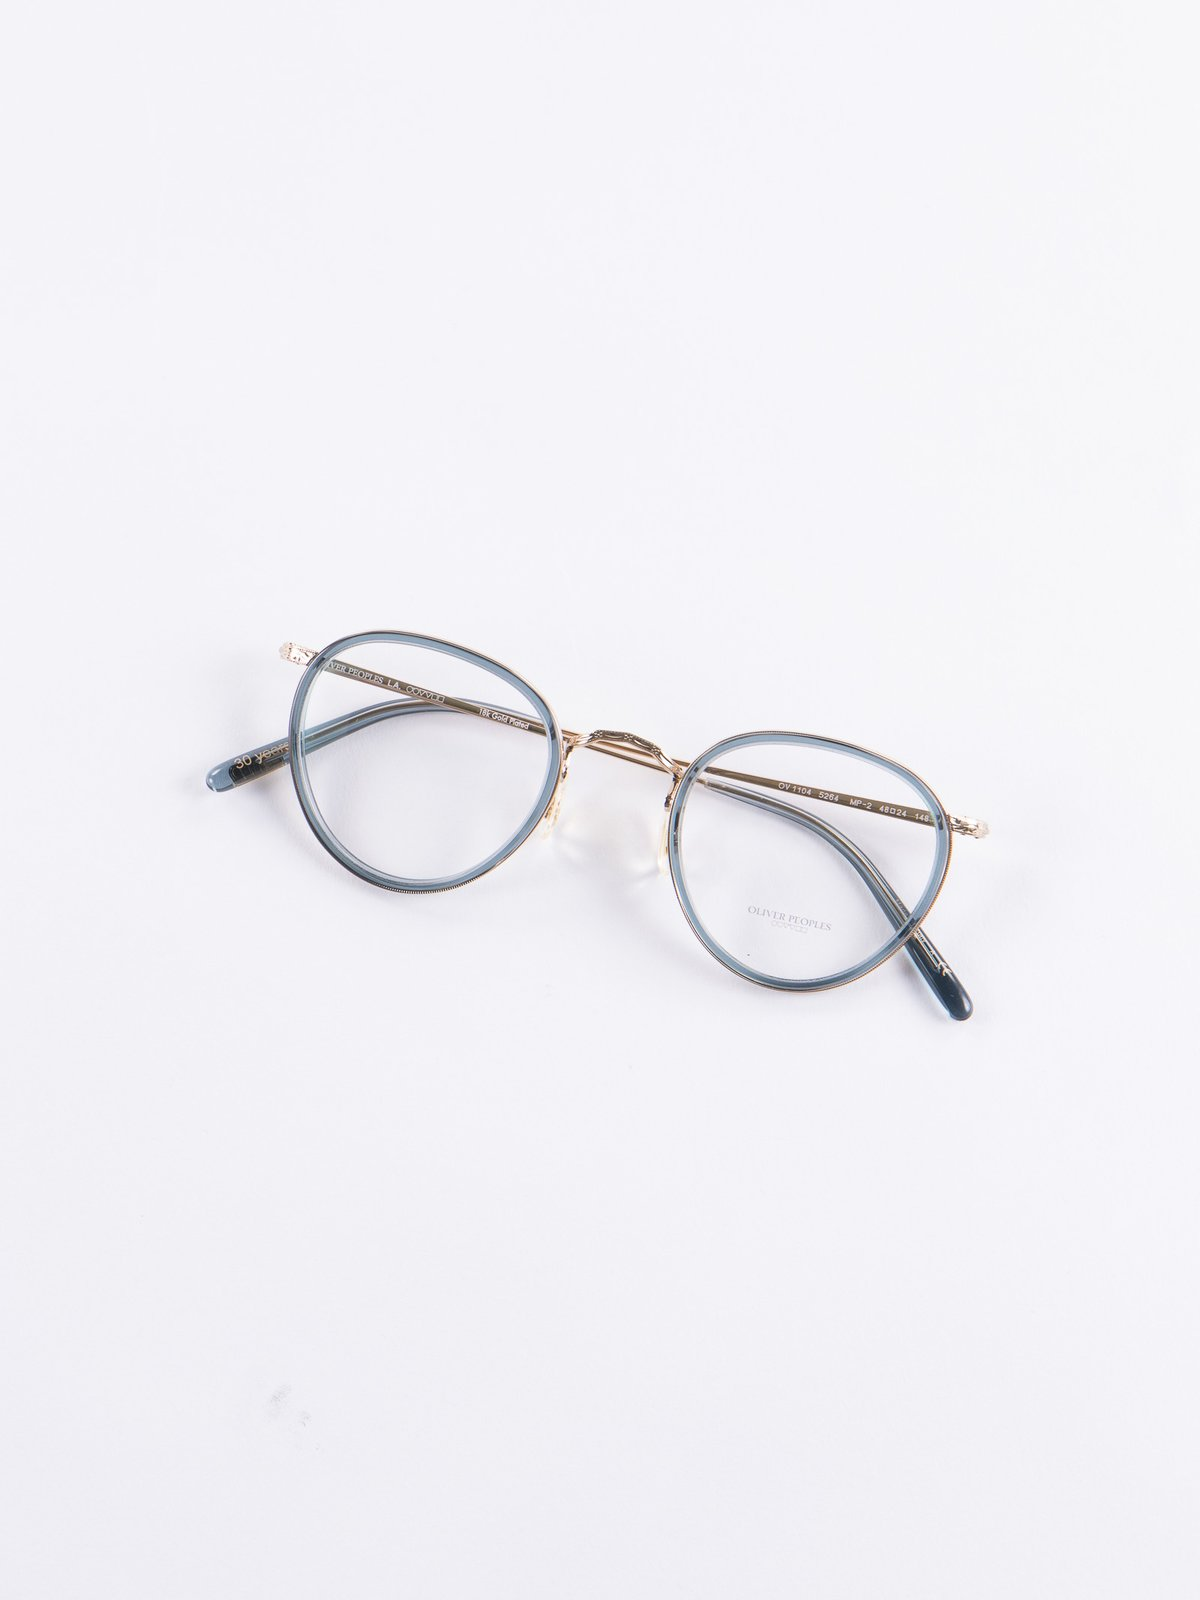 984a9d0c814 18k Gold Washed Teal MP–2 Optical Frame by Oliver Peoples – The ...